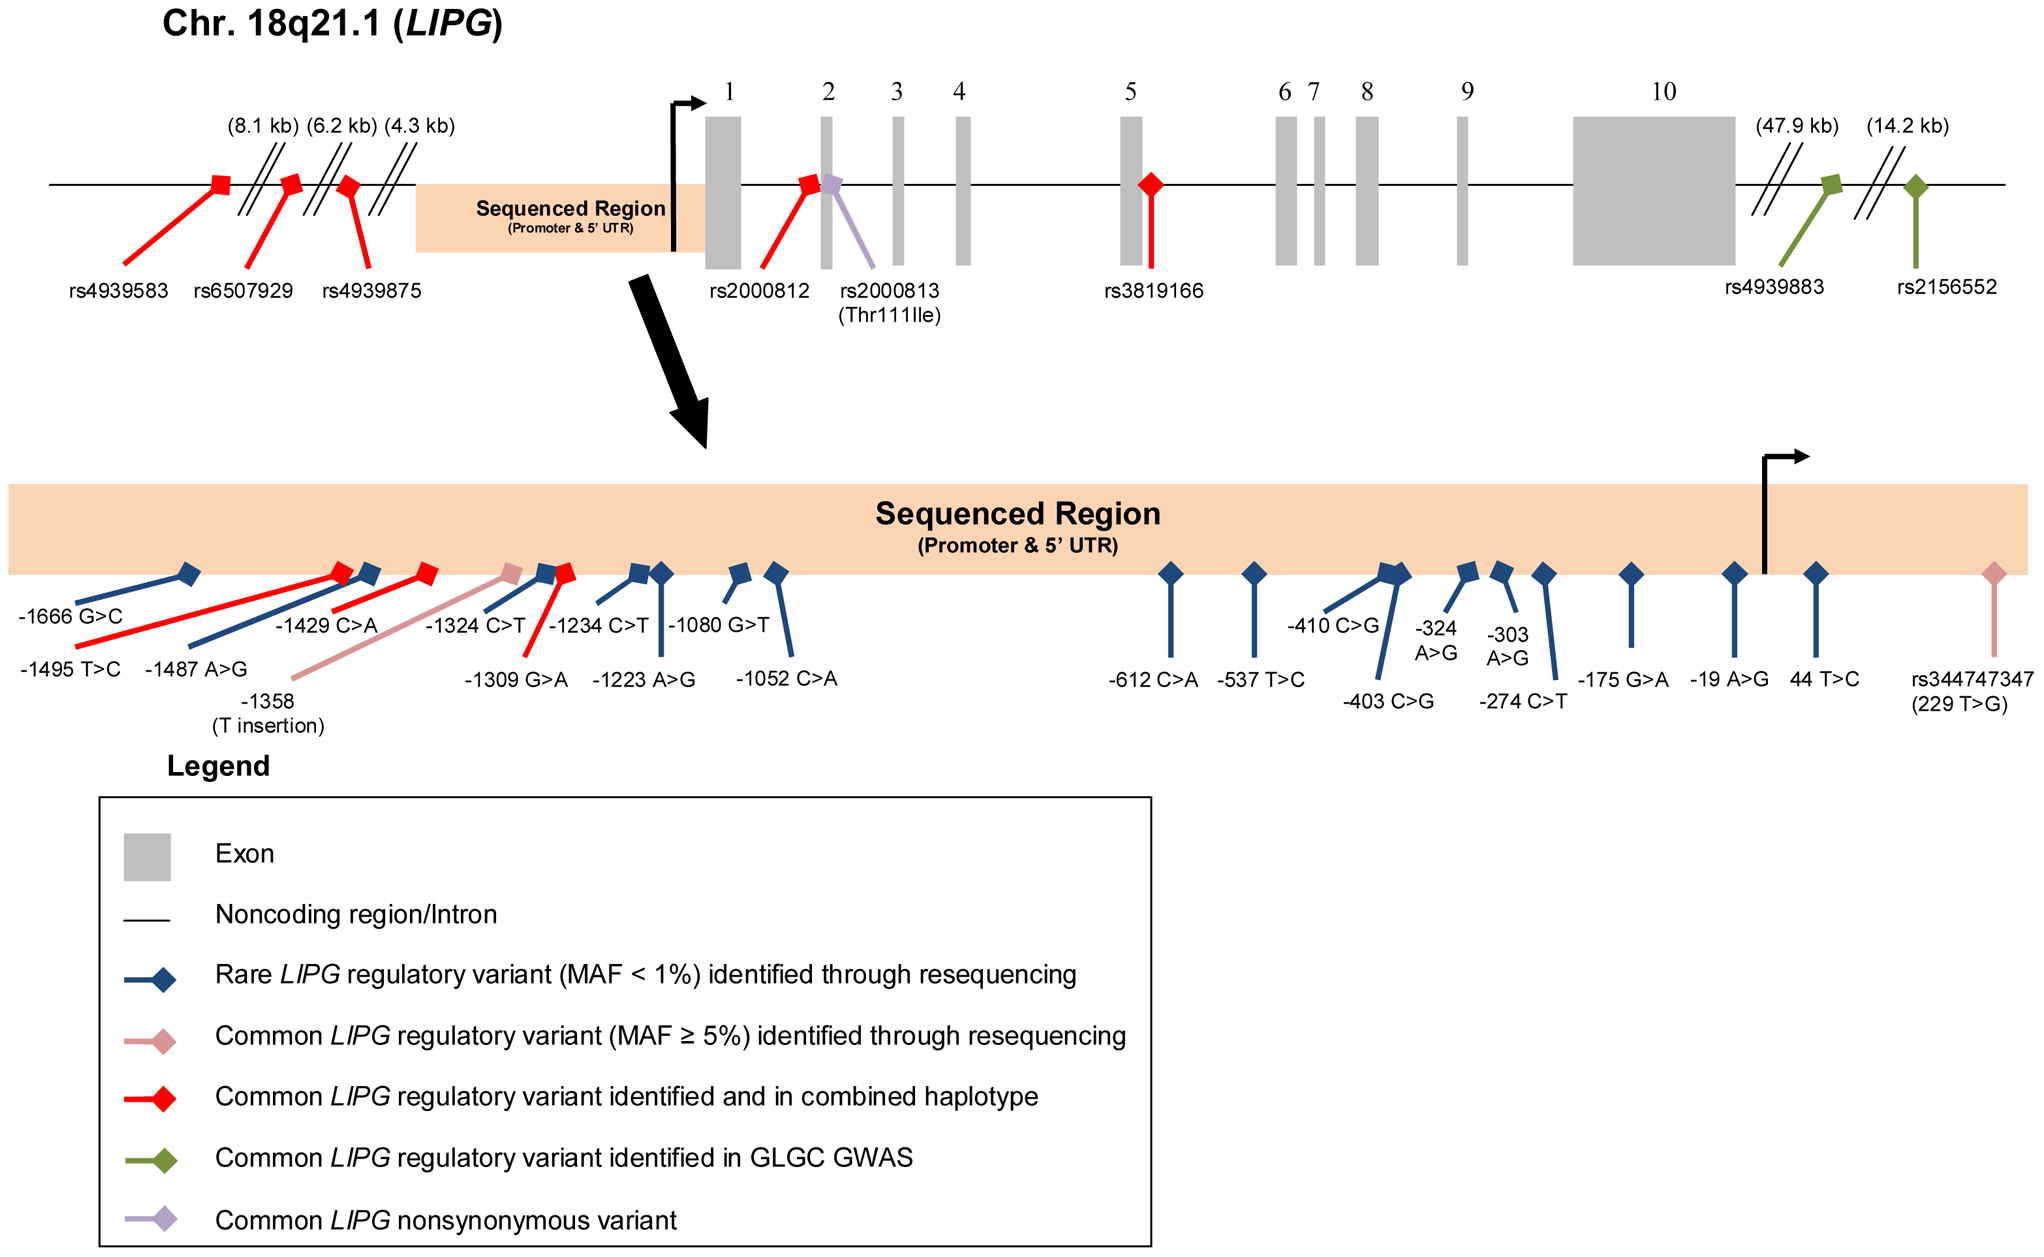 Rare and common <i>LIPG</i> regulatory variants studied.